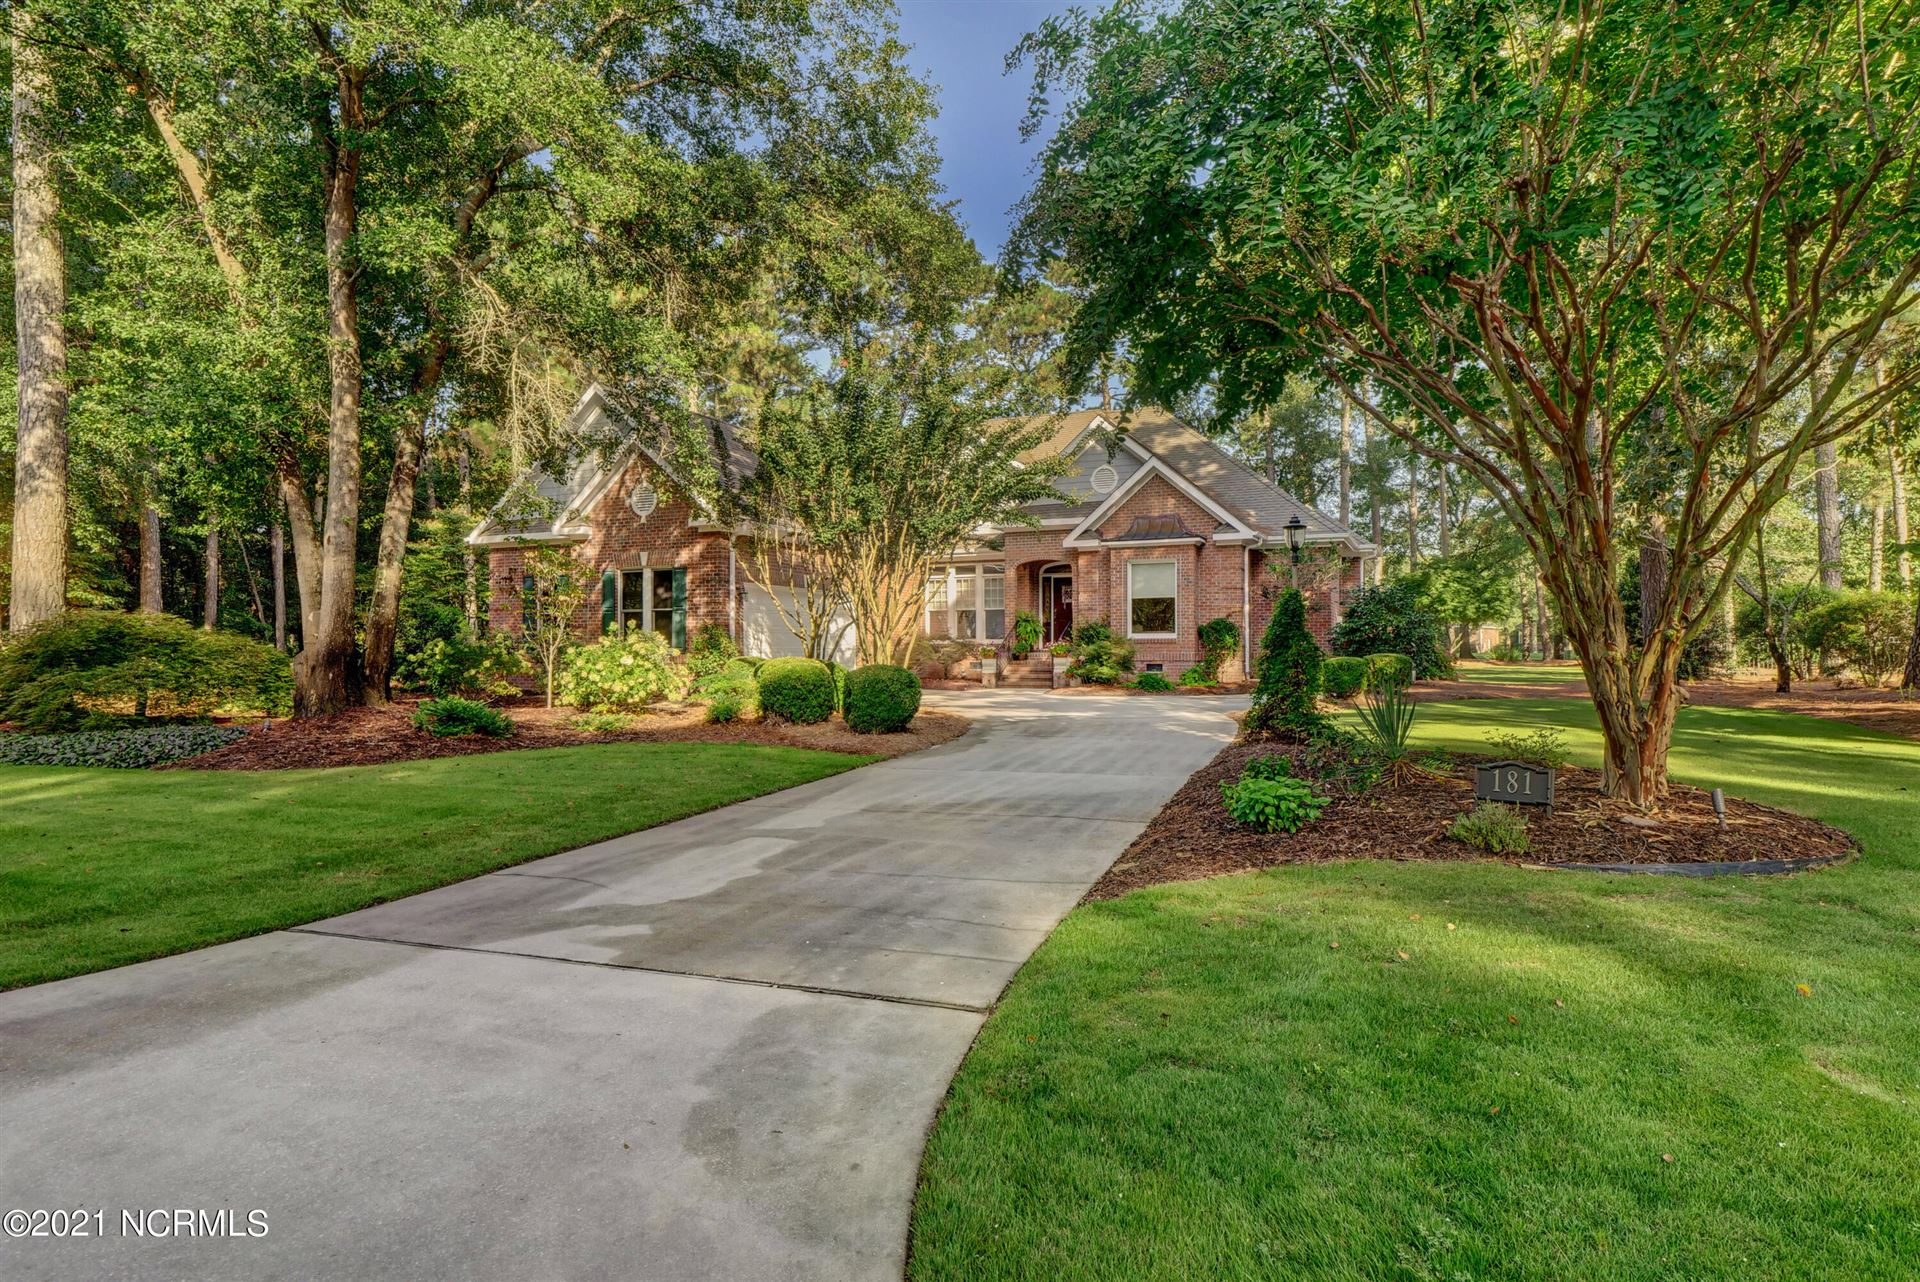 Photo of 181 Red Berry Drive, Wallace, NC 28466 (MLS # 100290851)